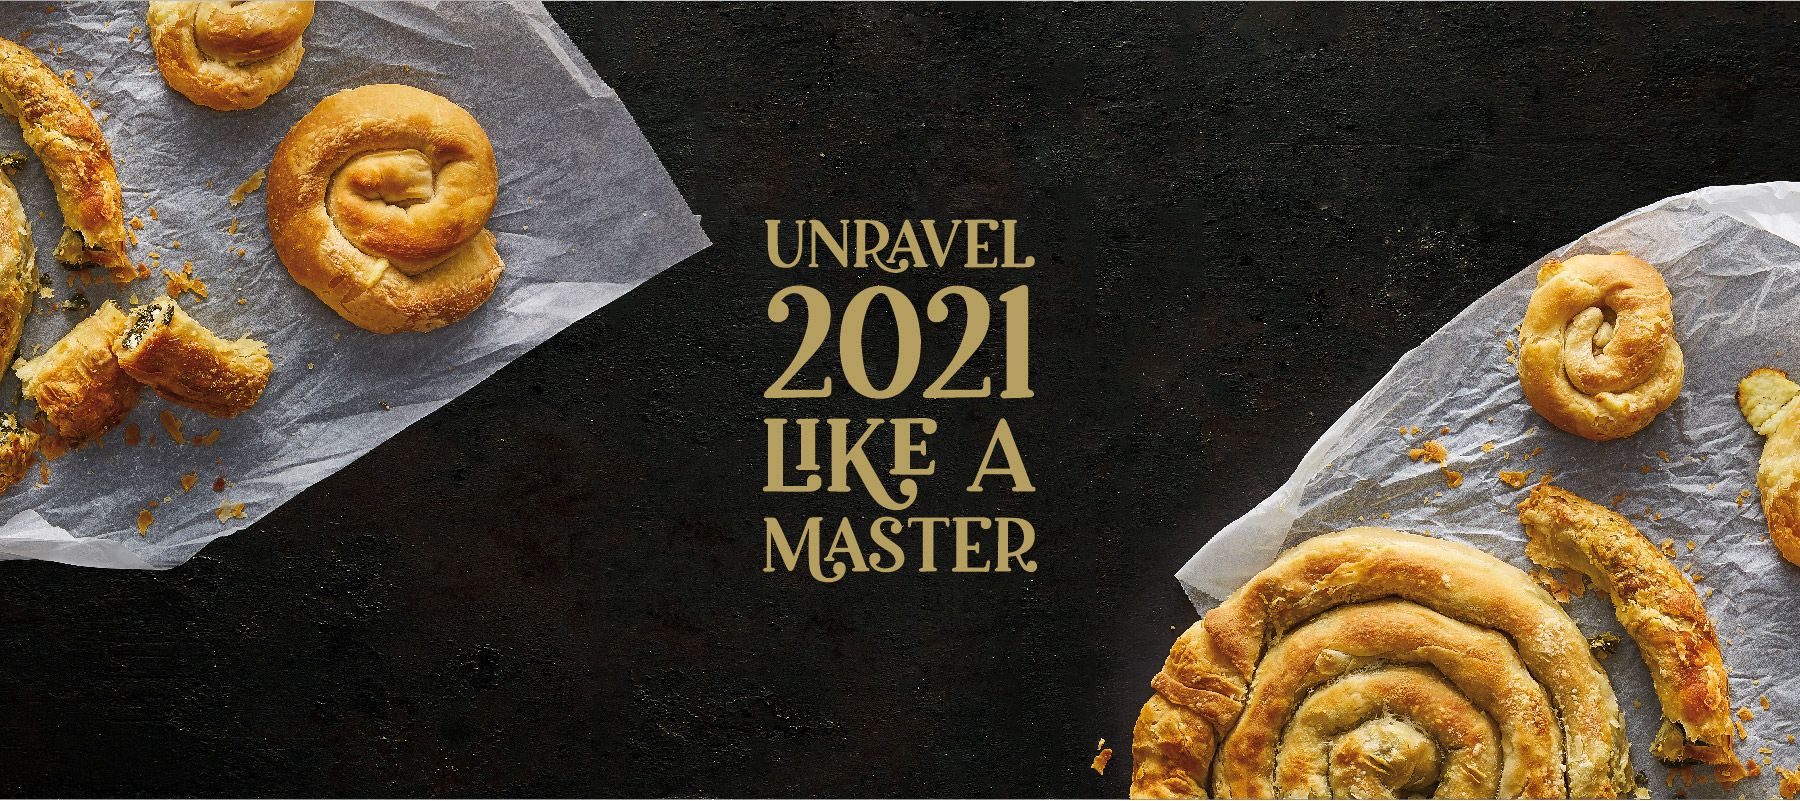 Unravel 2021 like a master